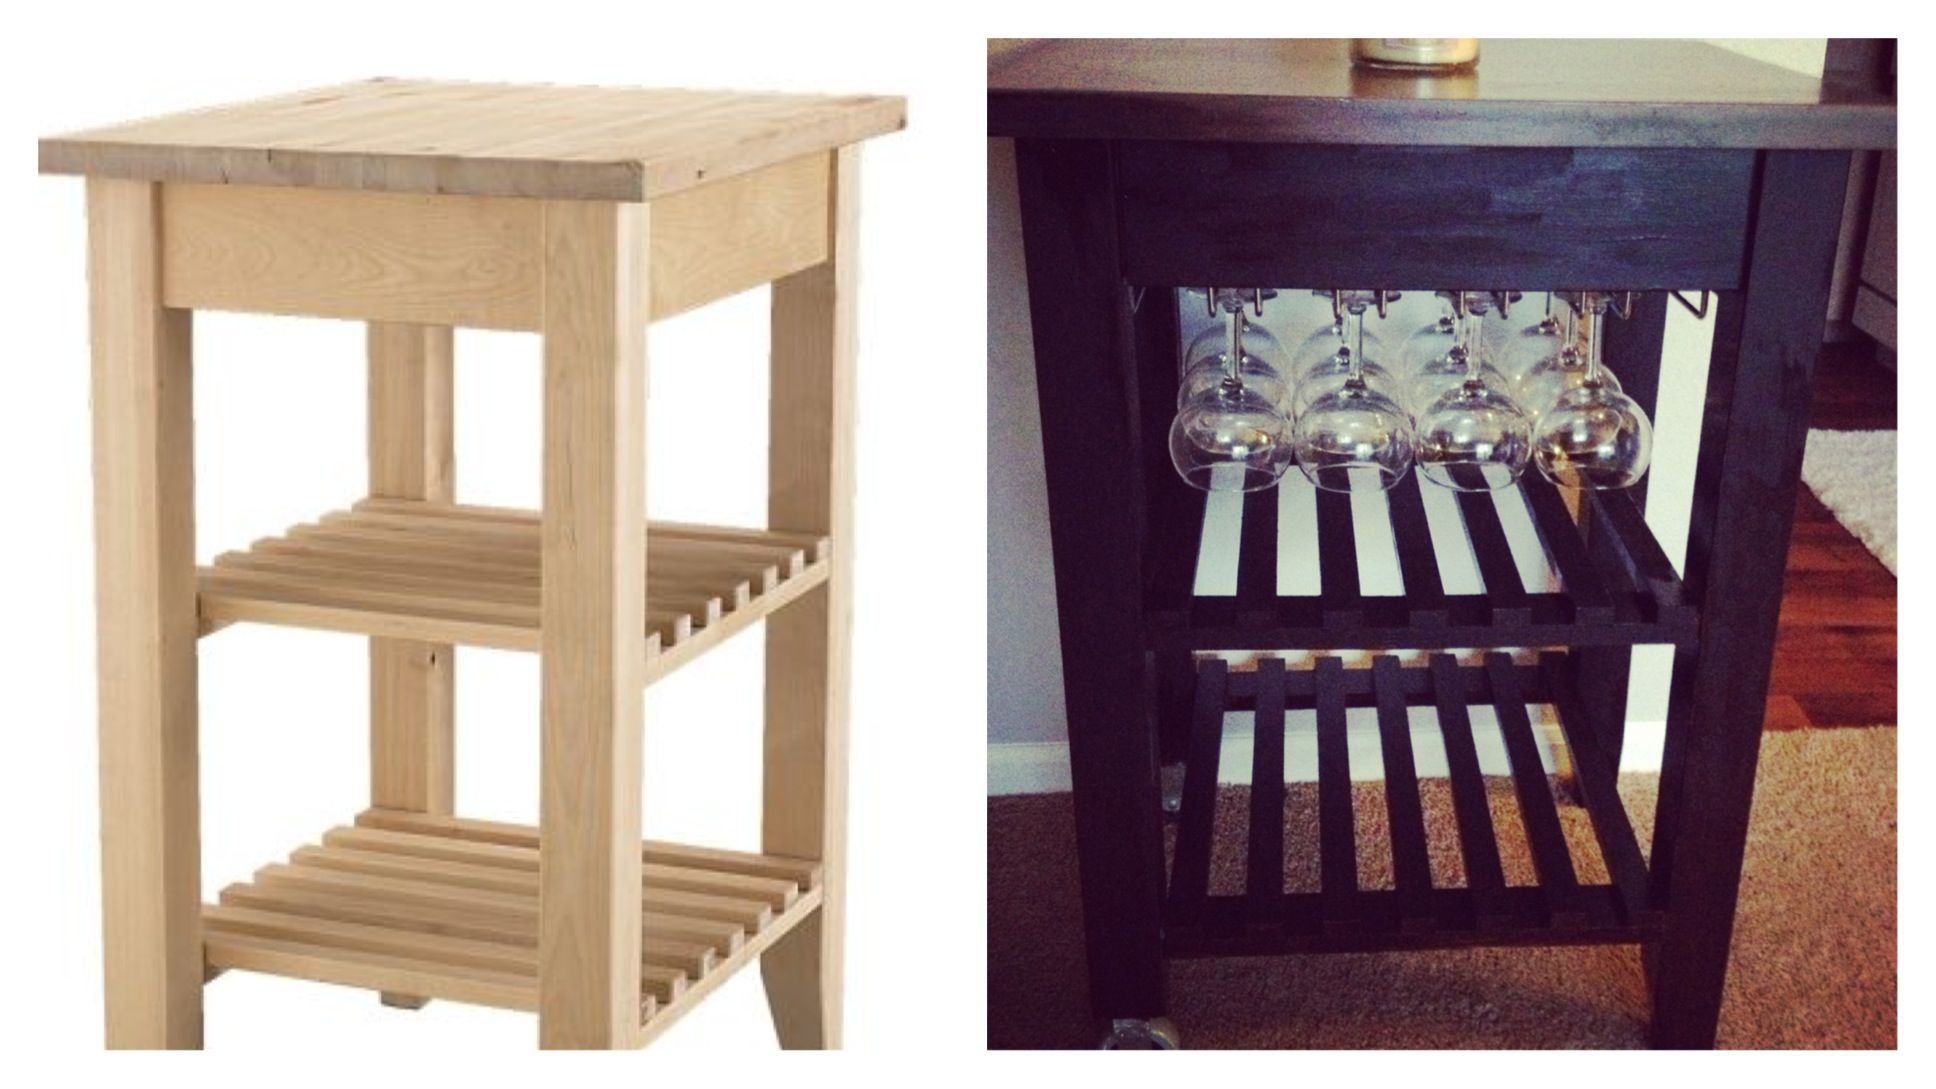 Ikea Bekvam Kitchen Cart Into Wine Rack Just Added A Plywood Piece Under The Top And Connected An Hanging From